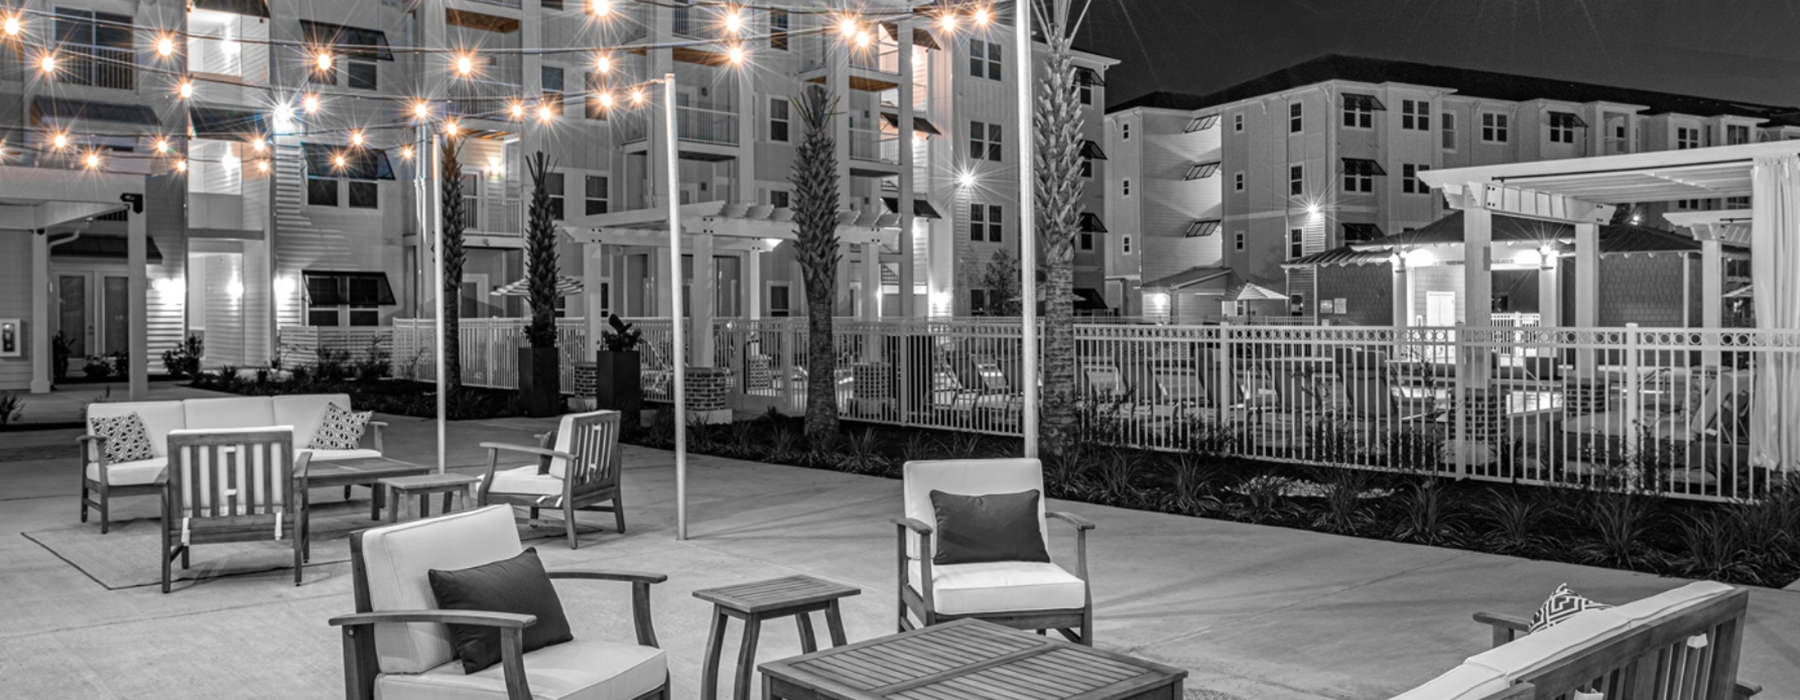 Outdoor space with ample seating and twinkle lights